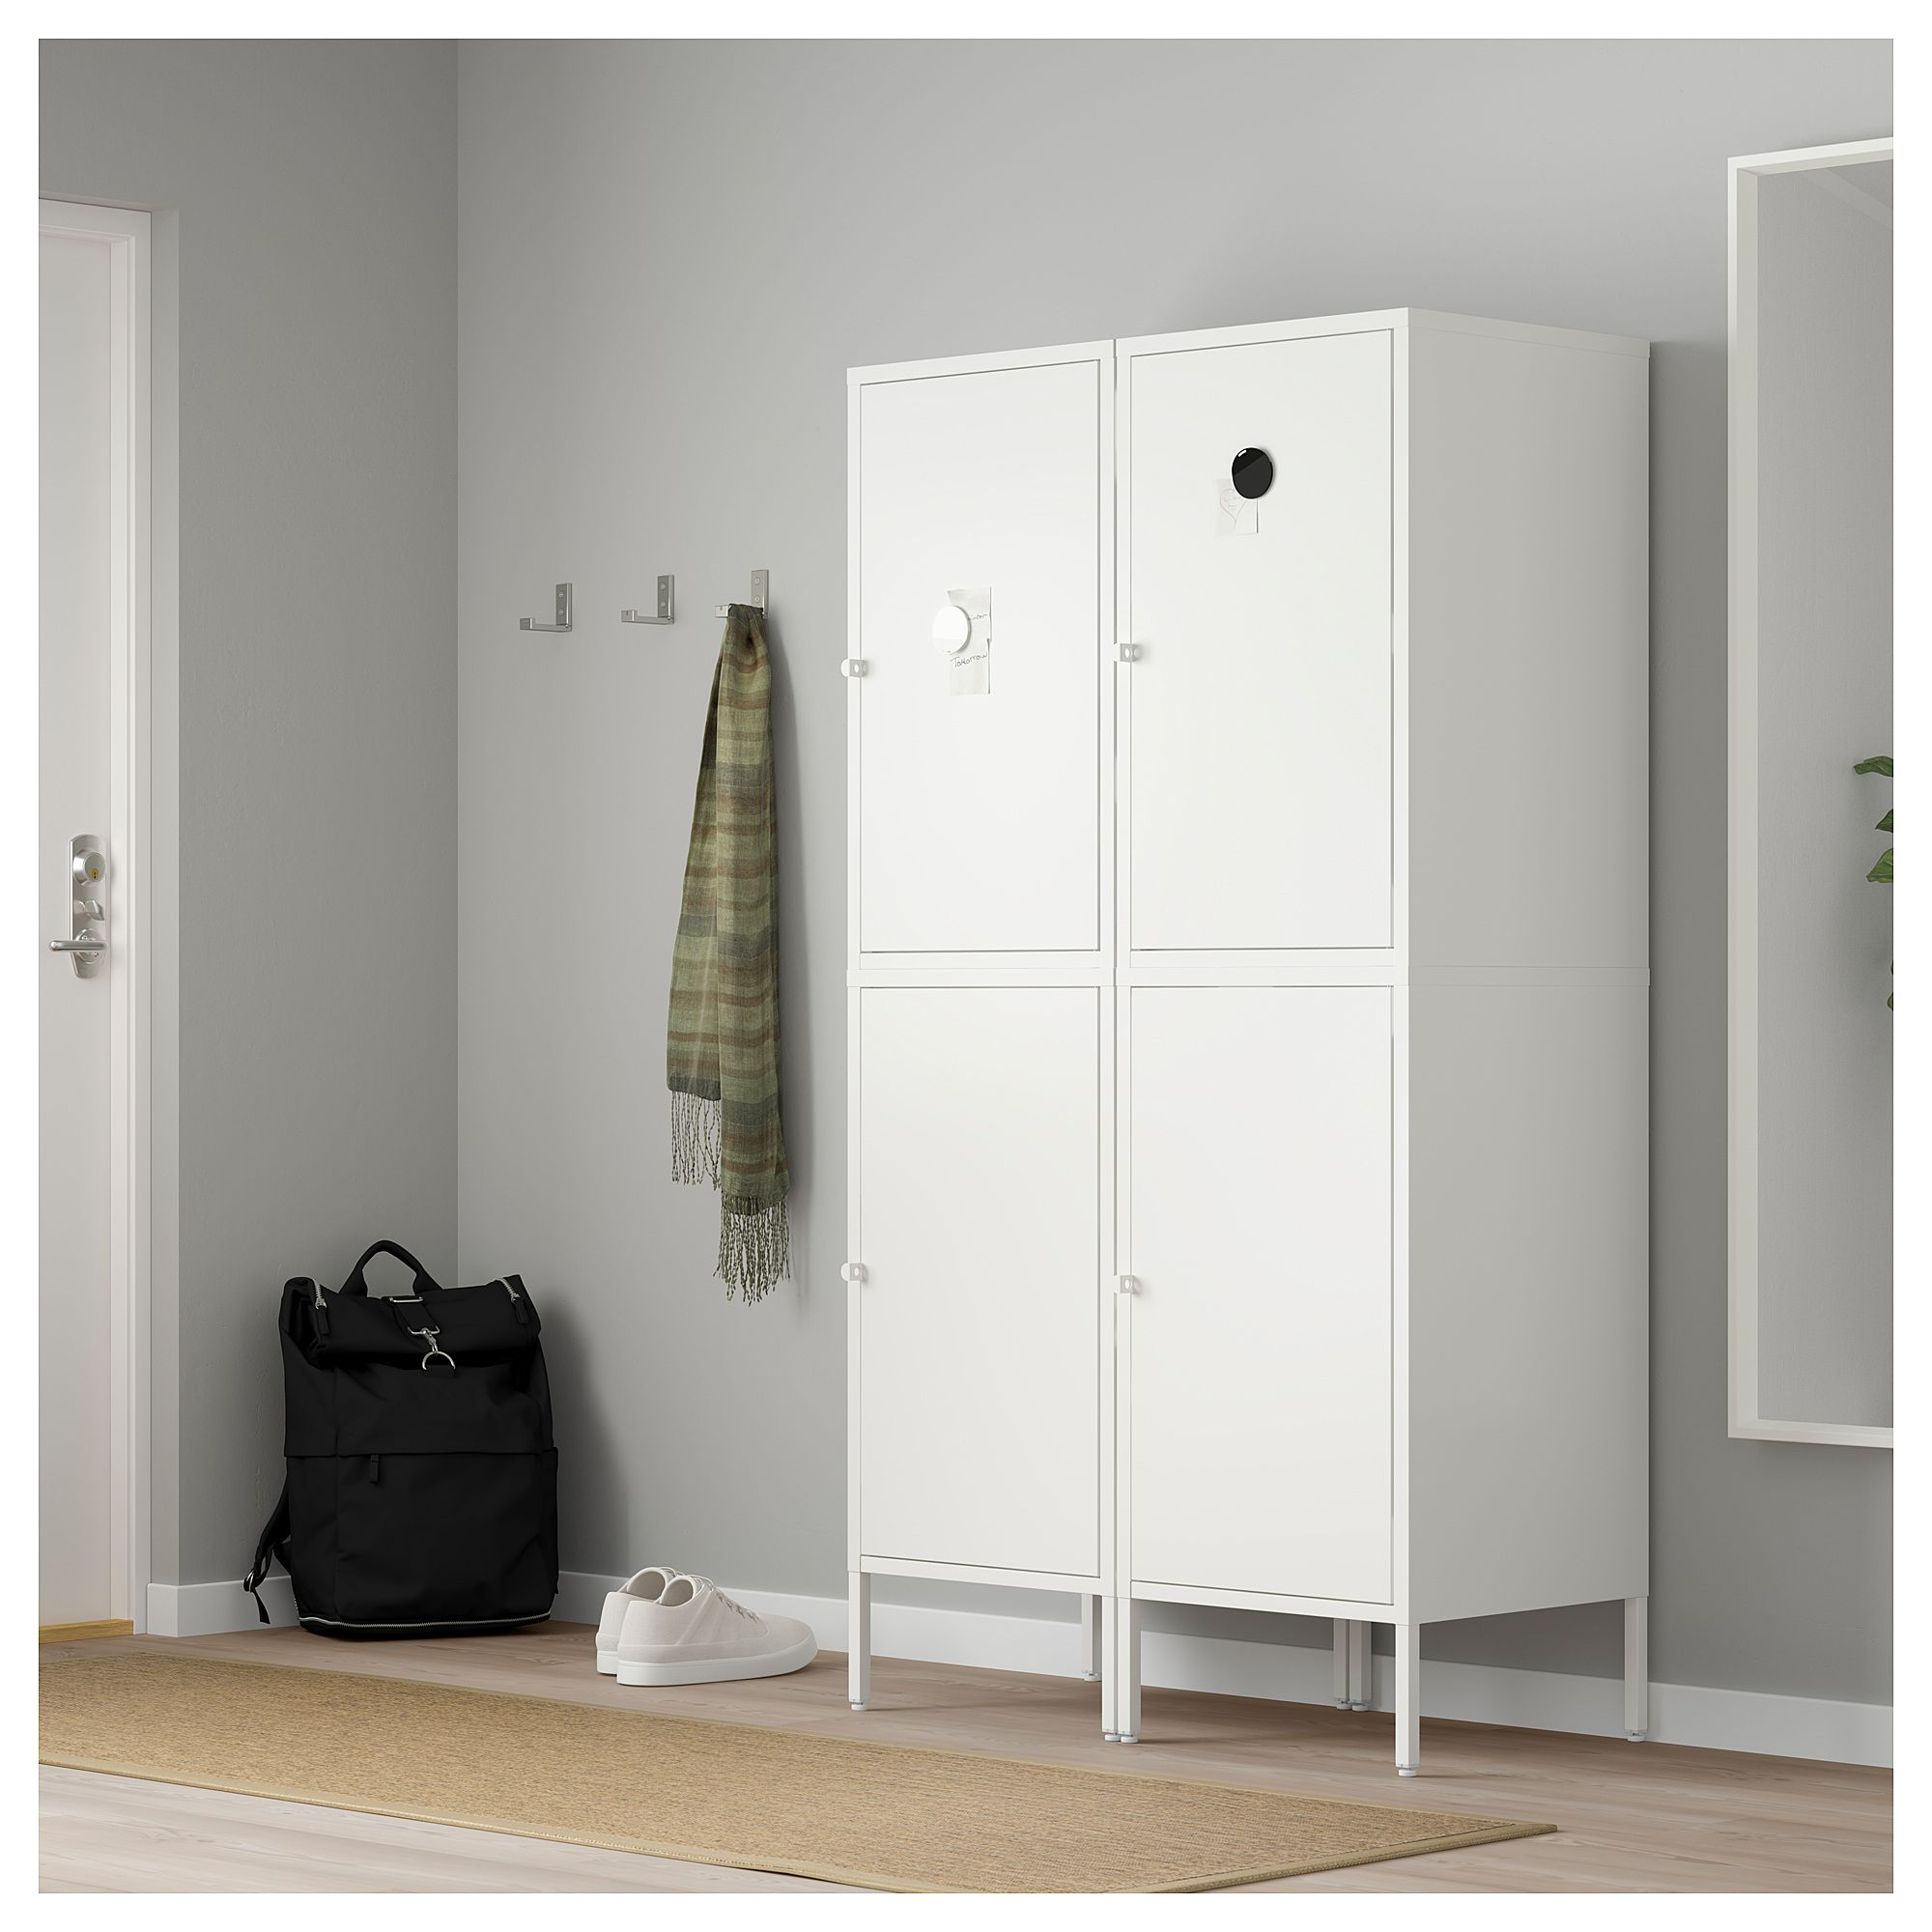 HÄllan Storage Combination With Doors White Products In